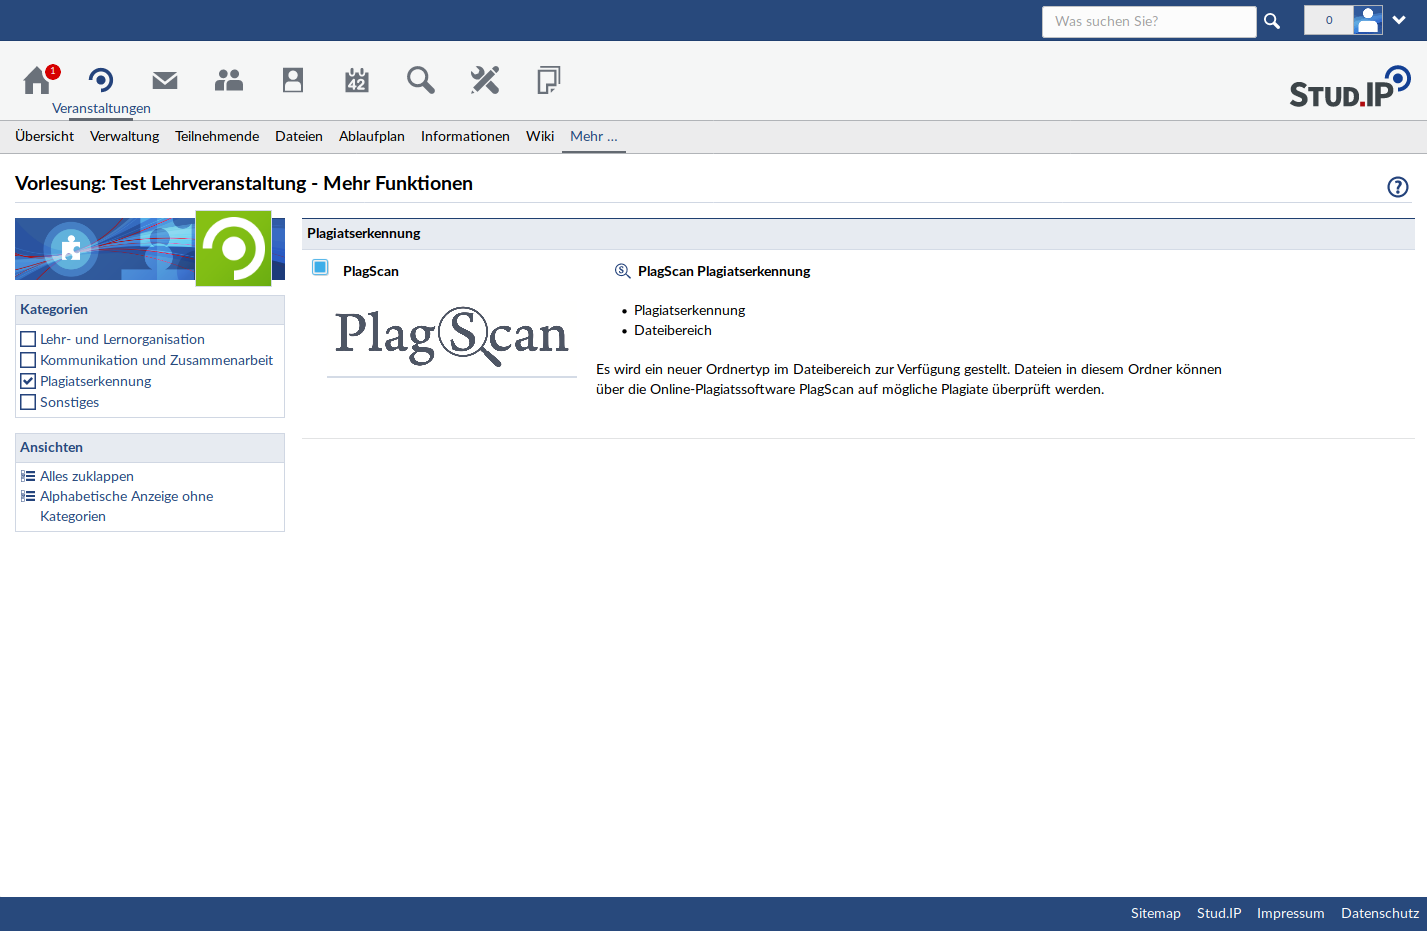 Activation PlagScan in the stud.ip interface